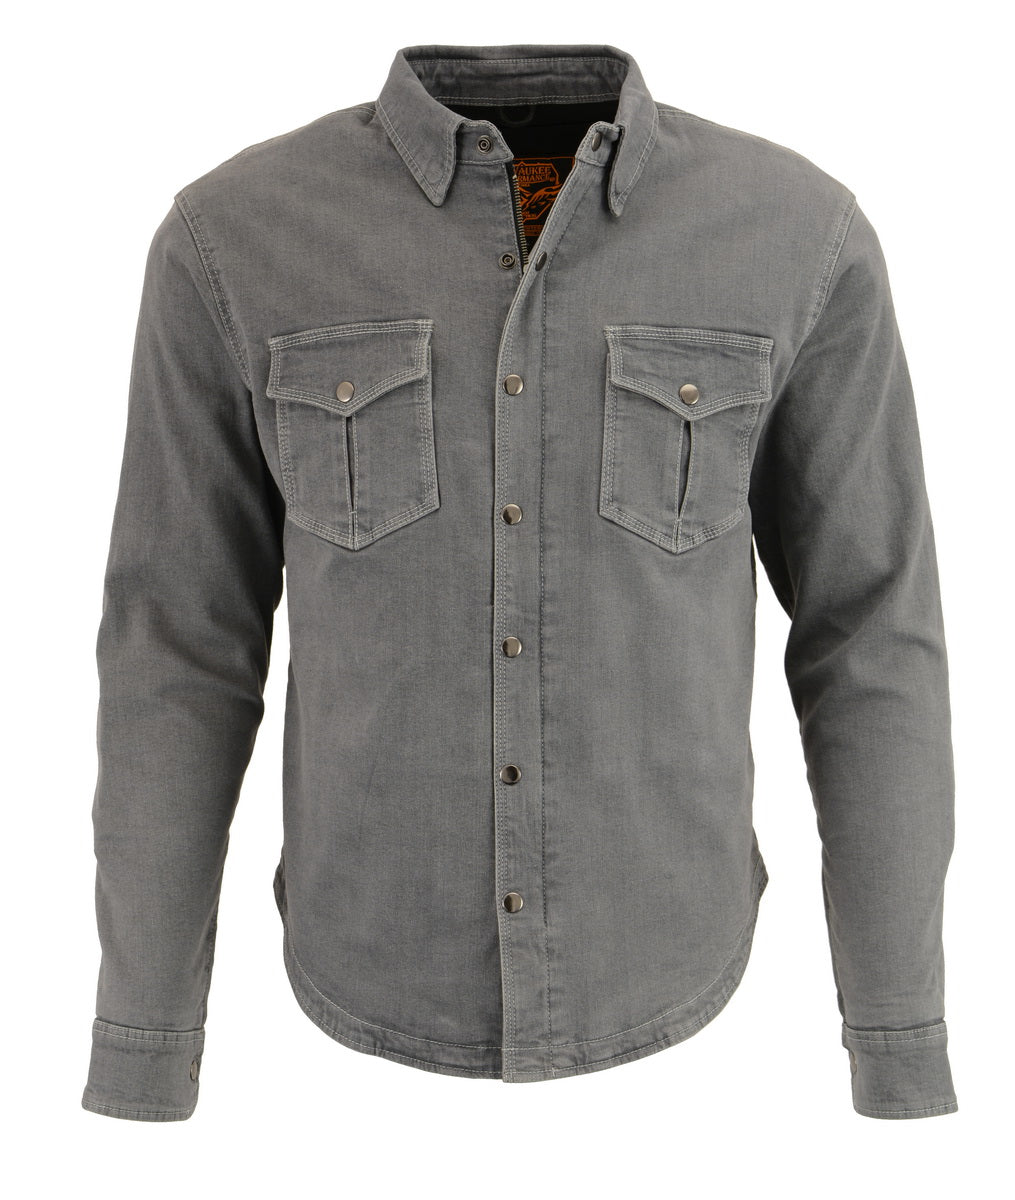 Milwaukee Performance MPM1621 Men's Grey Armored Denim Shirt with